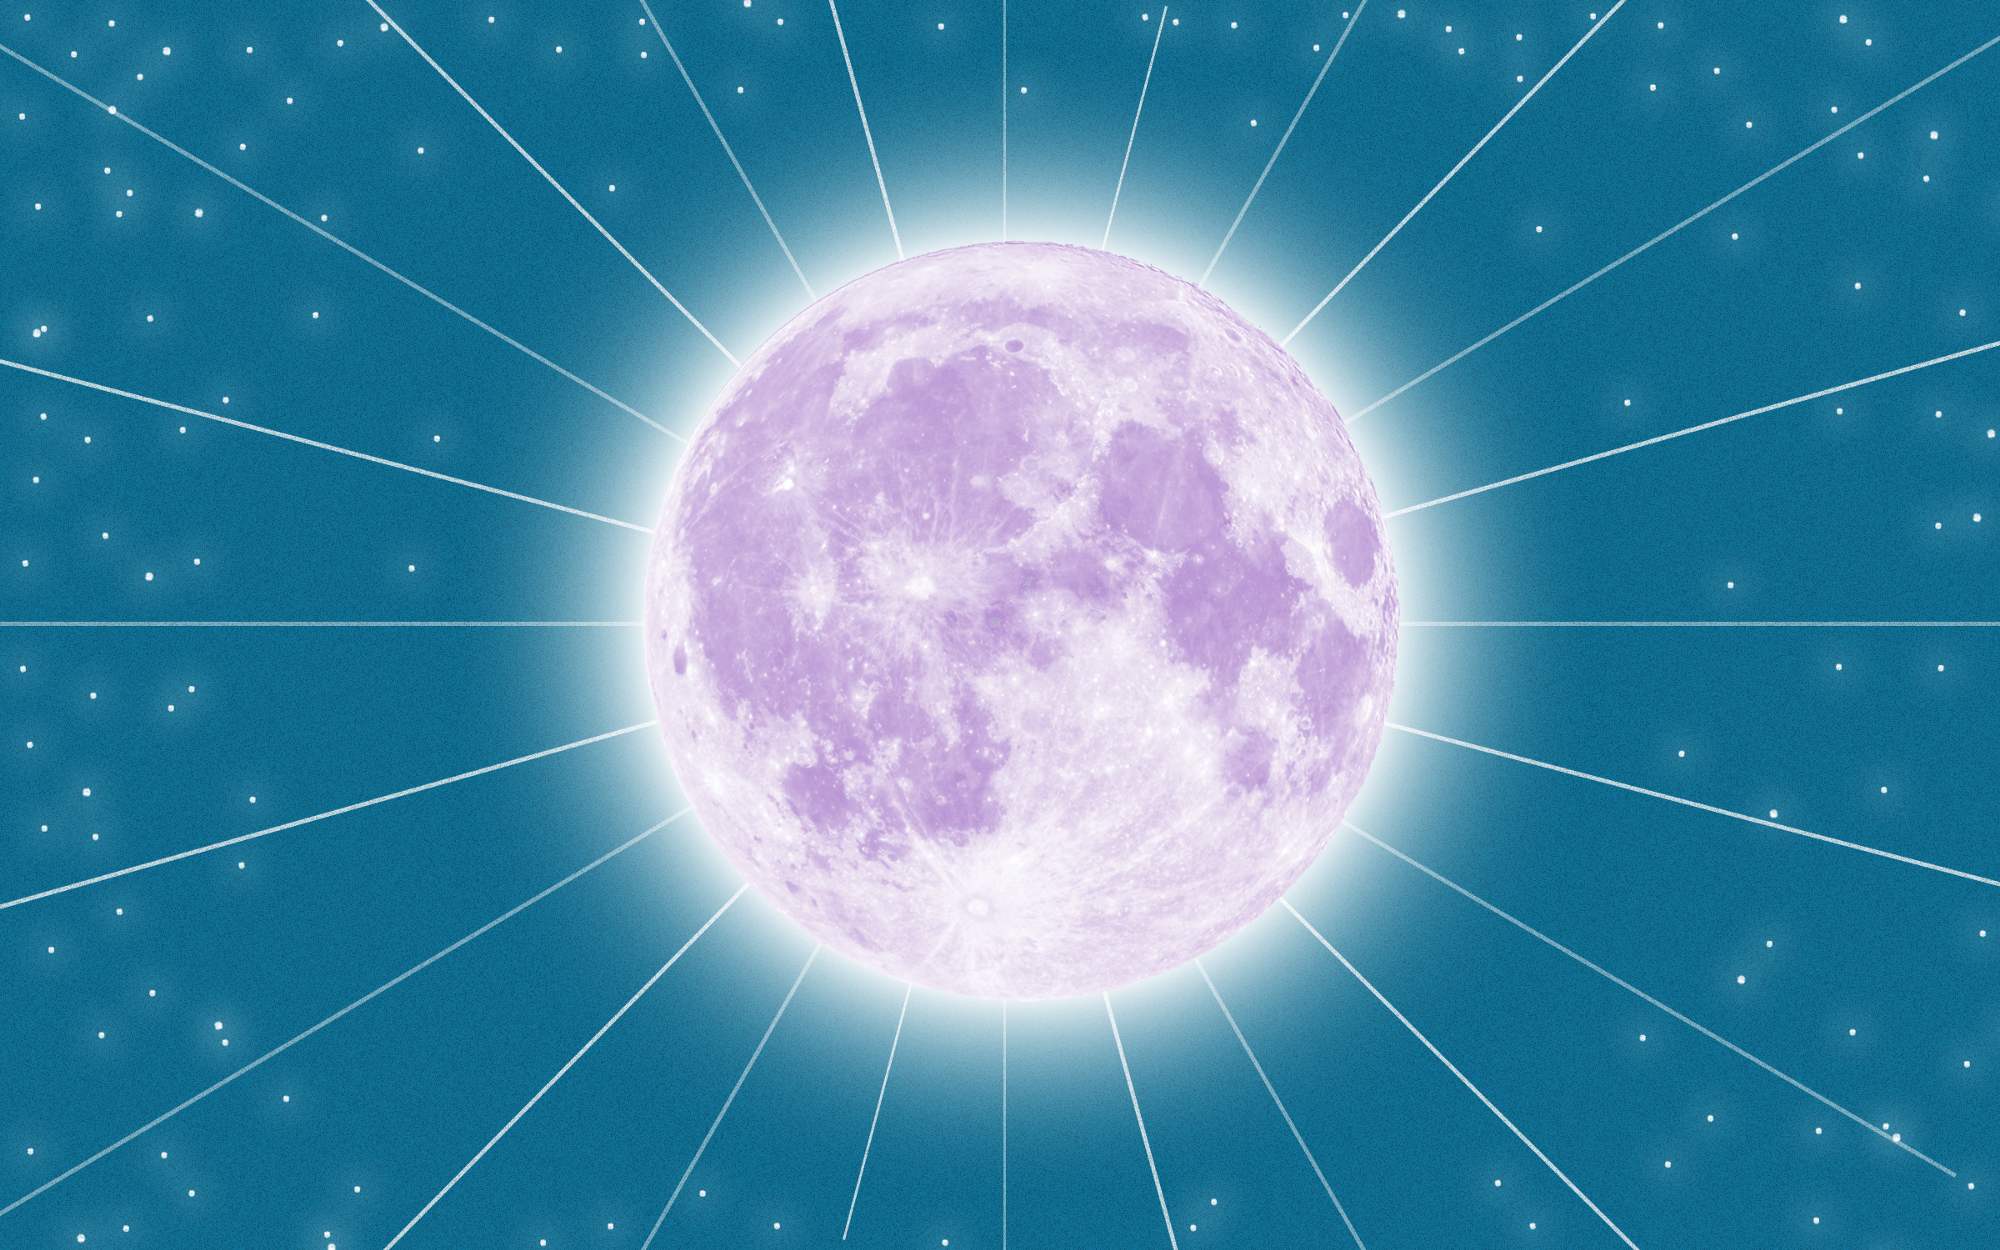 What Is The Meaning Of A Blue Moon In Astrology